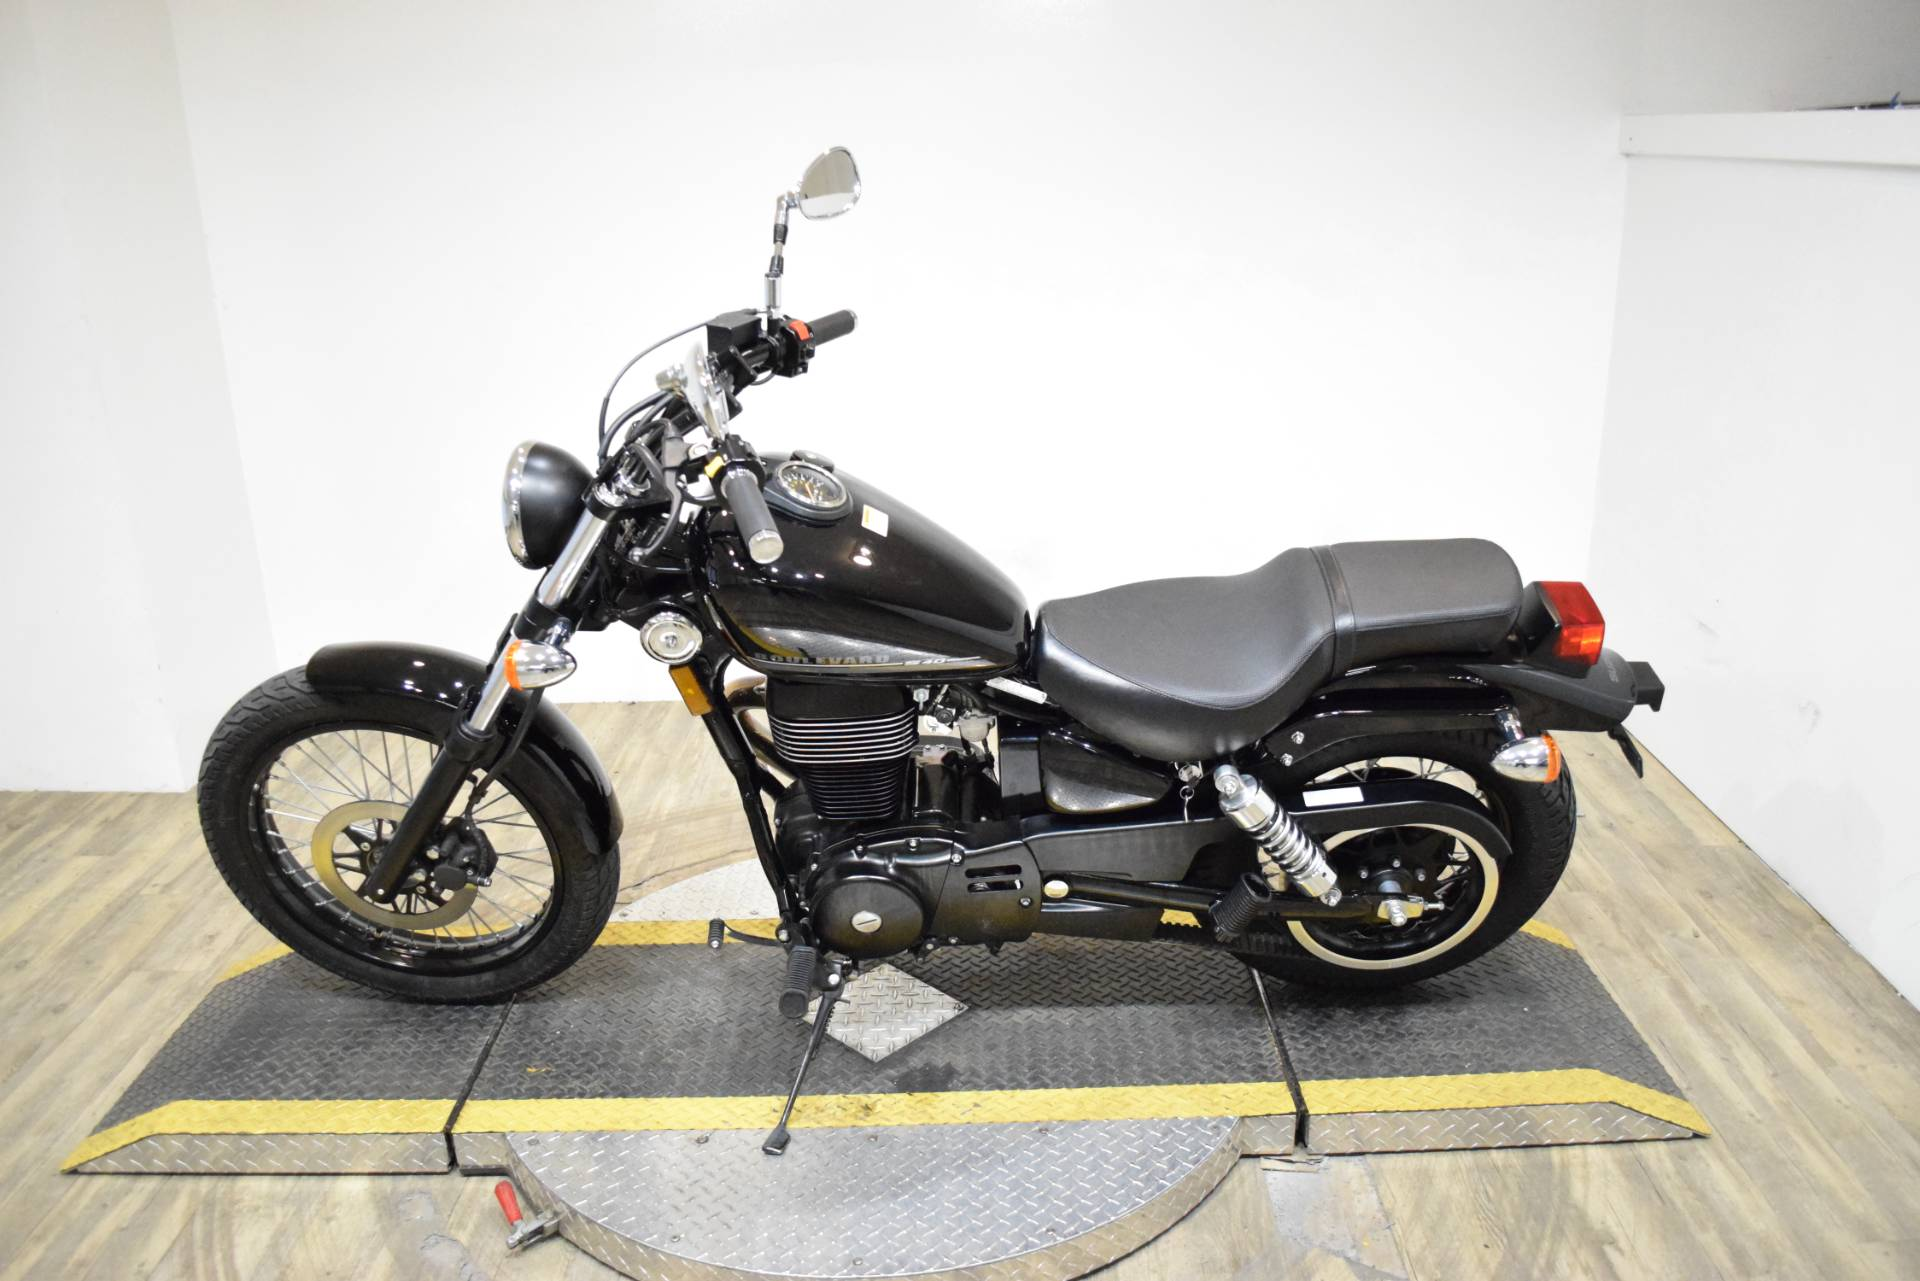 2017 Suzuki Boulevard S40 in Wauconda, Illinois - Photo 15